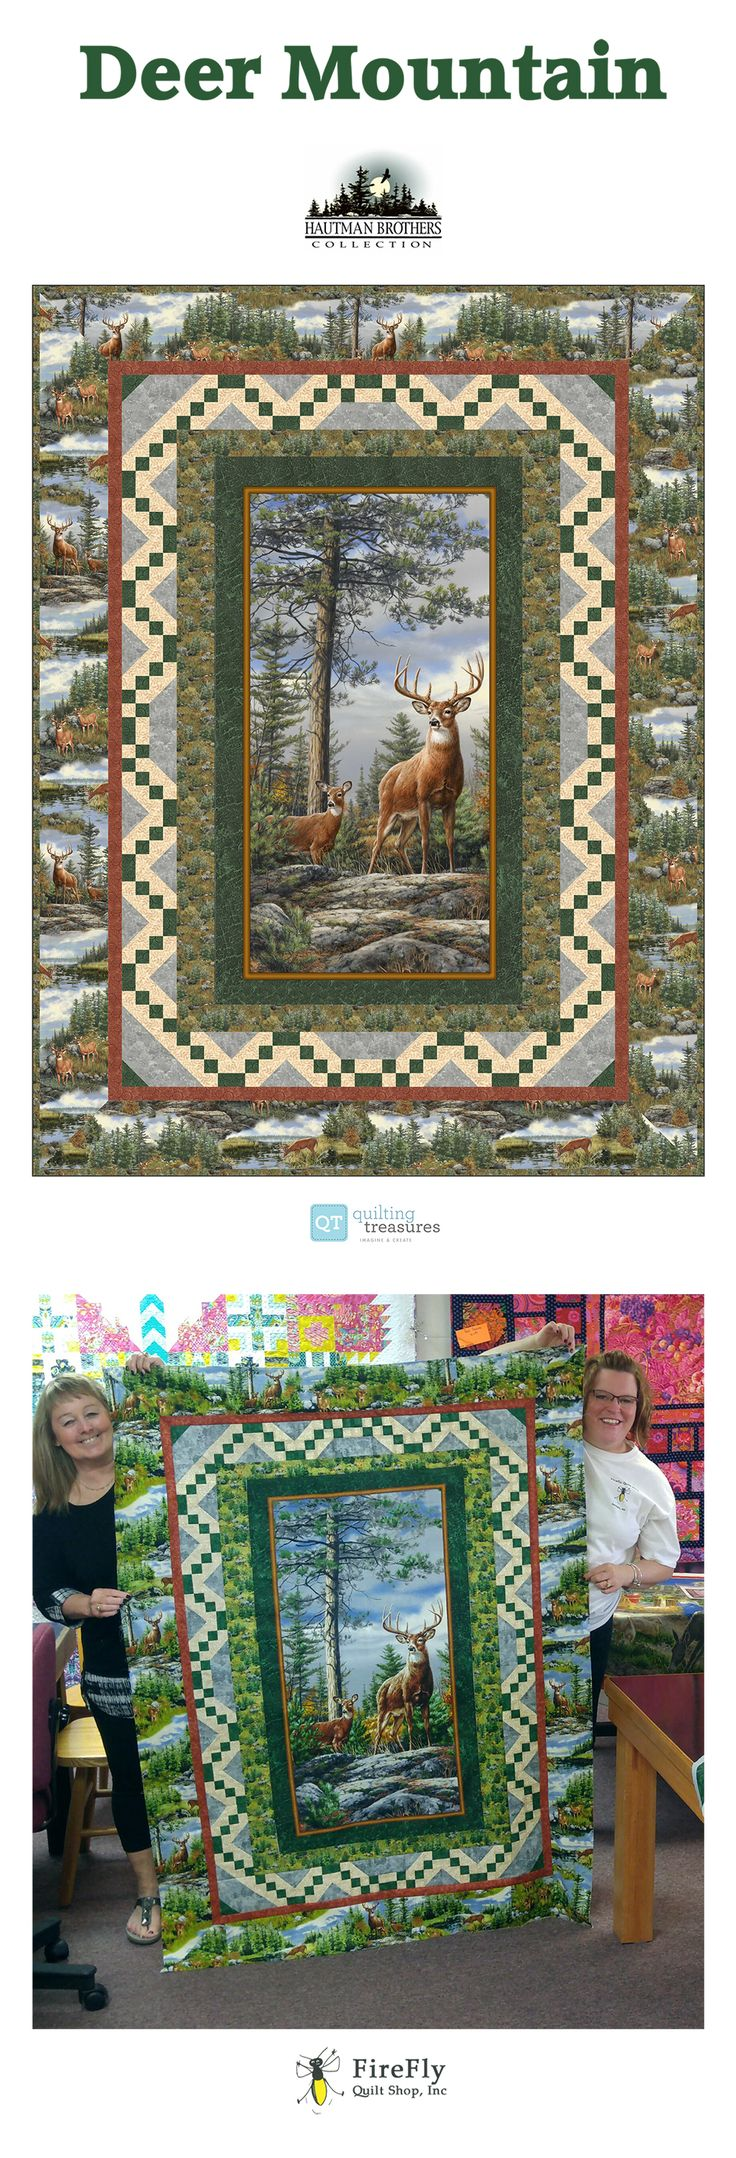 Secret Obsession Awesome Deer Mountain free quilt pattern! This stunning quilt uses our Deer Mountain fabric collection featuring beautiful artwork by the Hautman Brothers. This panel quilt was designed by Cyndi Hershey for Quilting Treasures. And the below picture features two lovely ladies from the Firefly Quilt Shop in Mankato, MN!! His Secret Obsession.Earn 75% Commissions On Front And Backend Sales Promoting His Secret Obsession - The Highest Converting Offer In It's Class That is...